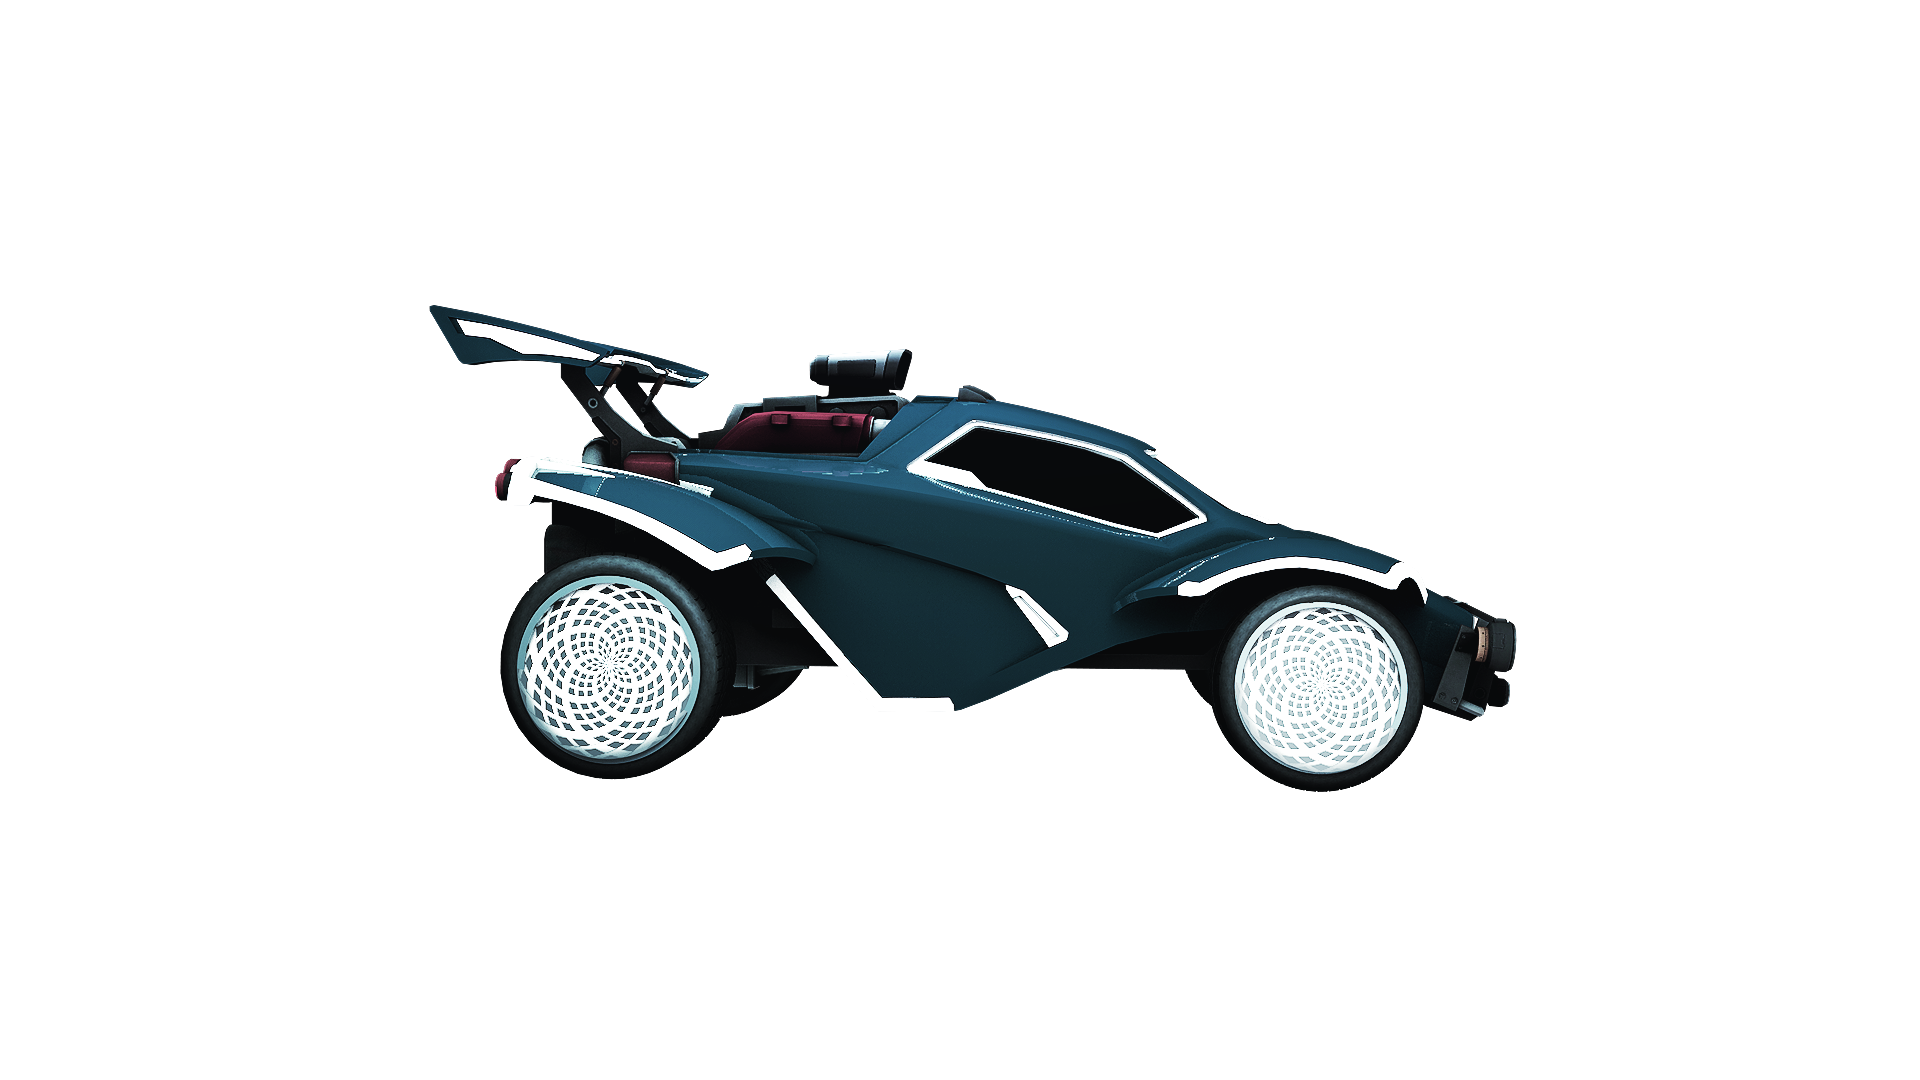 Rocket league octane png. Di va on twitter